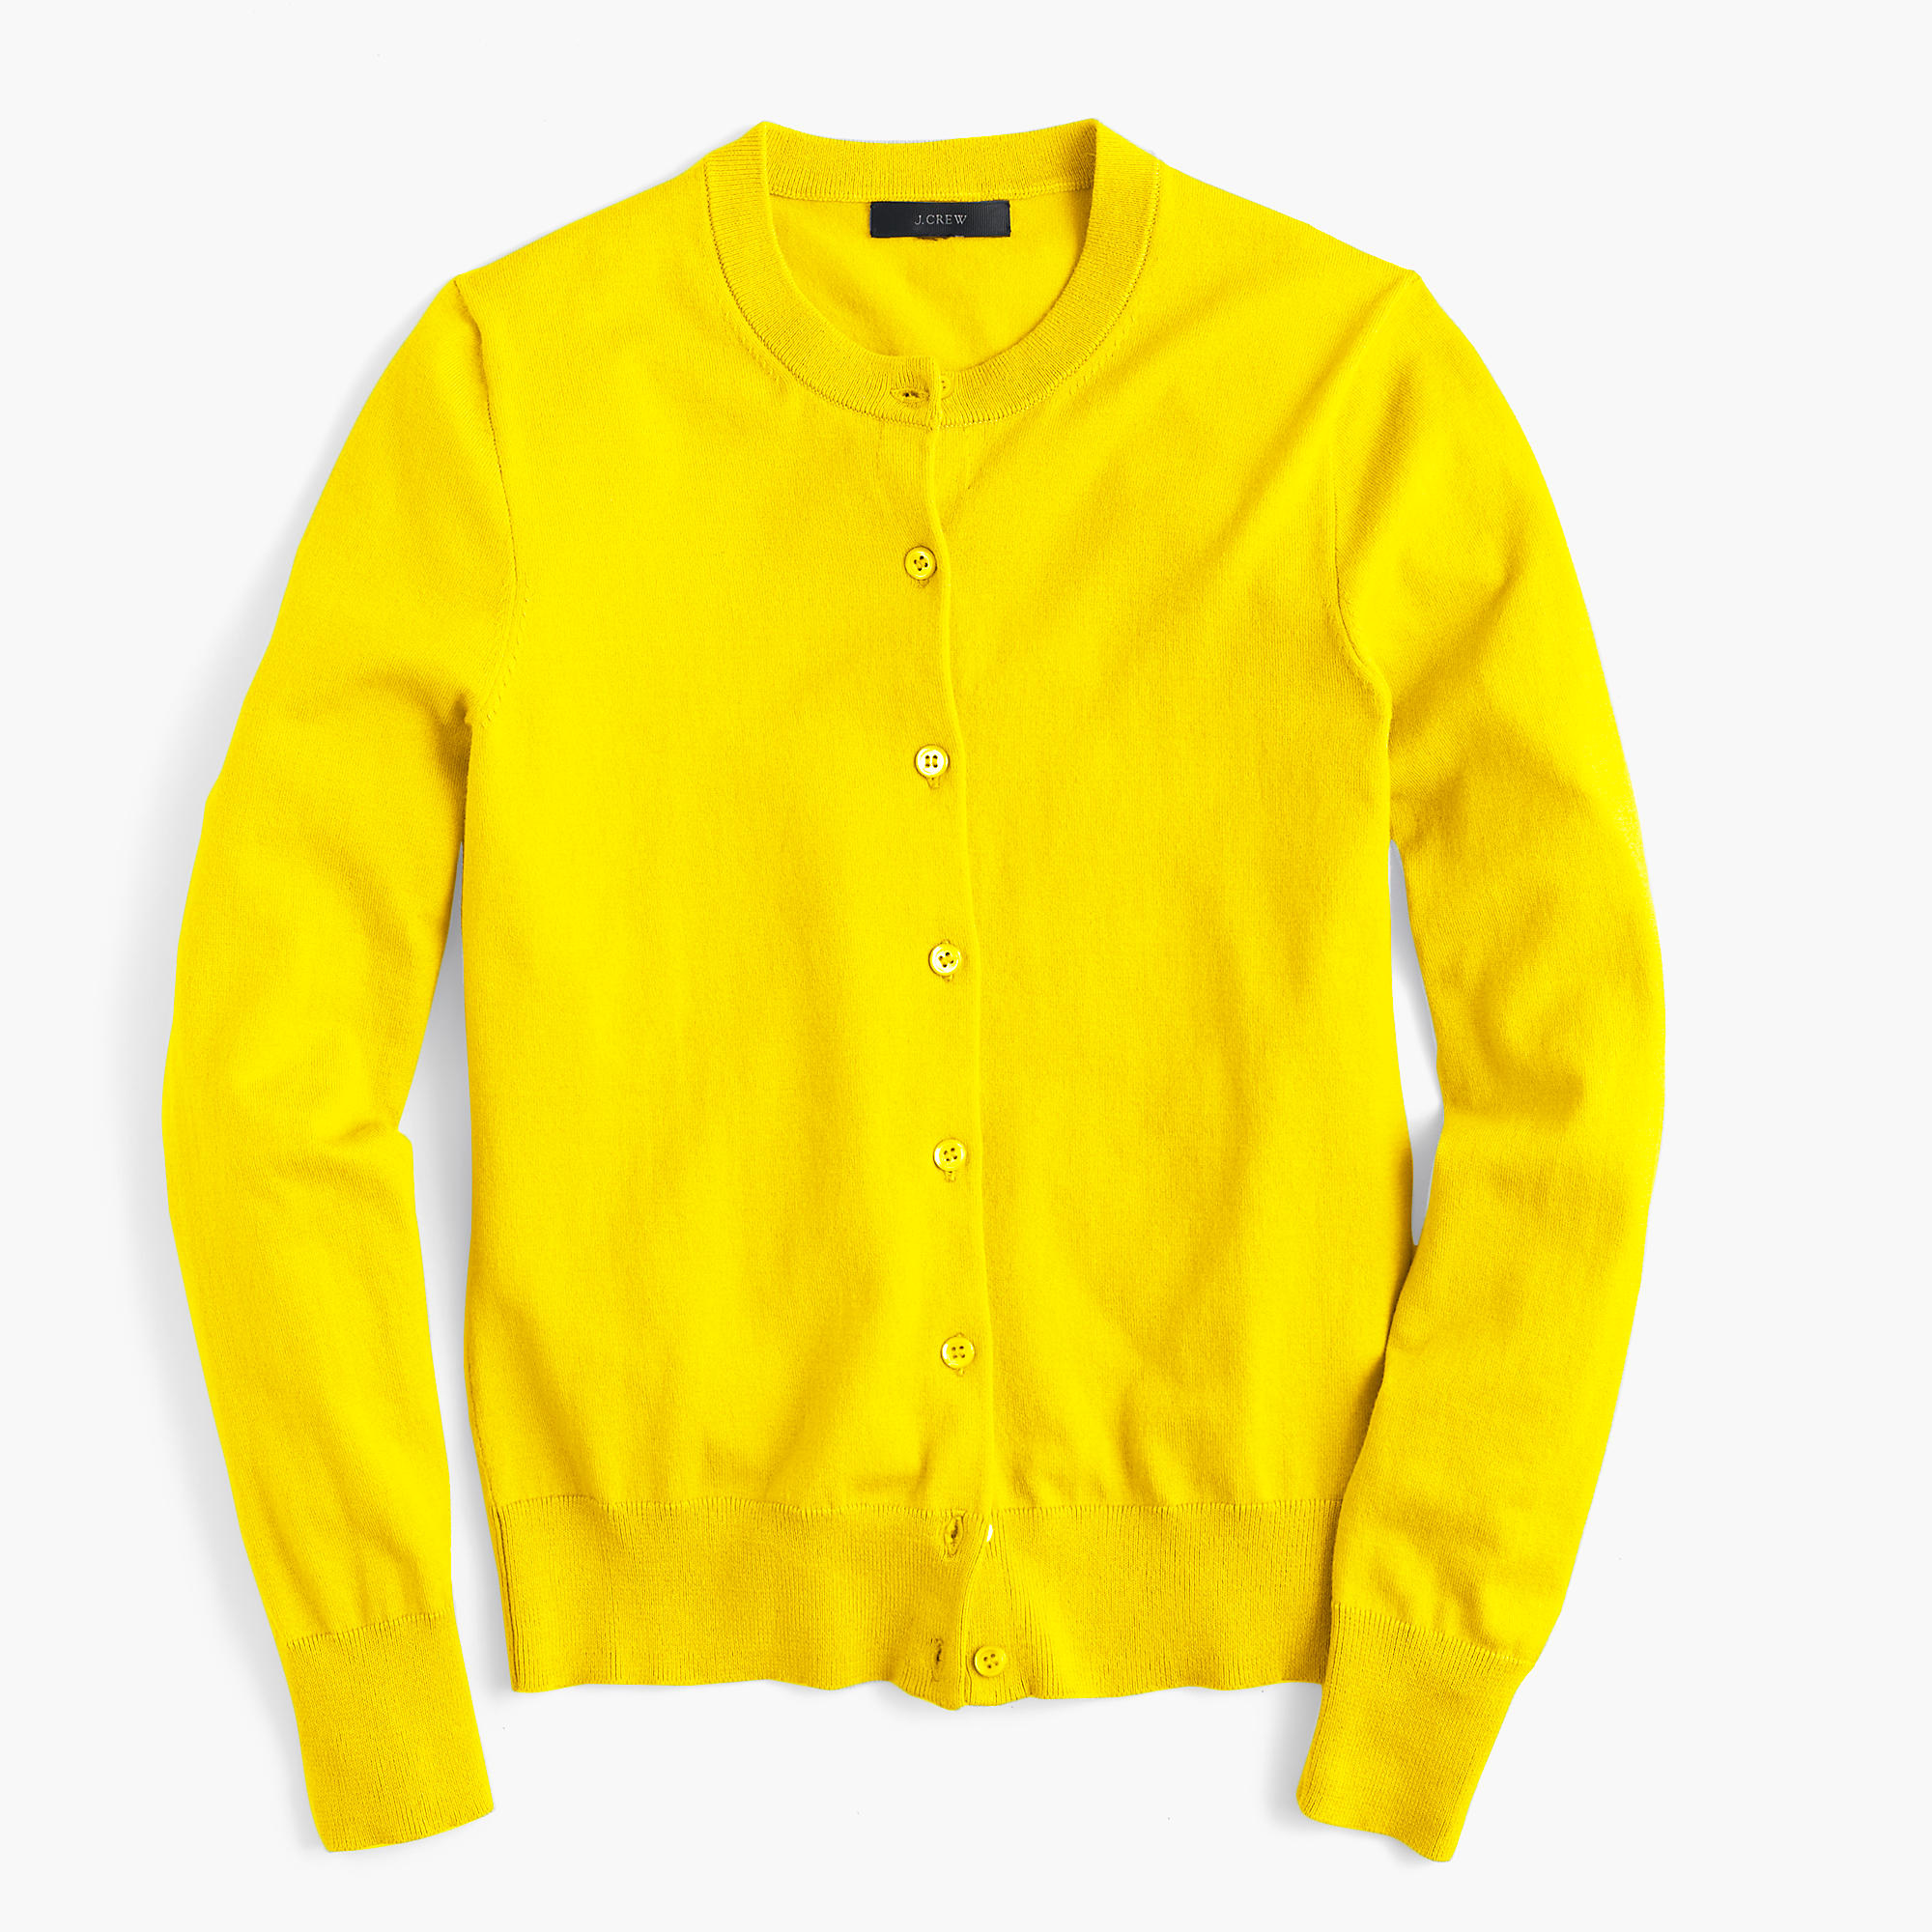 J.crew Cotton Jackie Cardigan Sweater in Yellow | Lyst